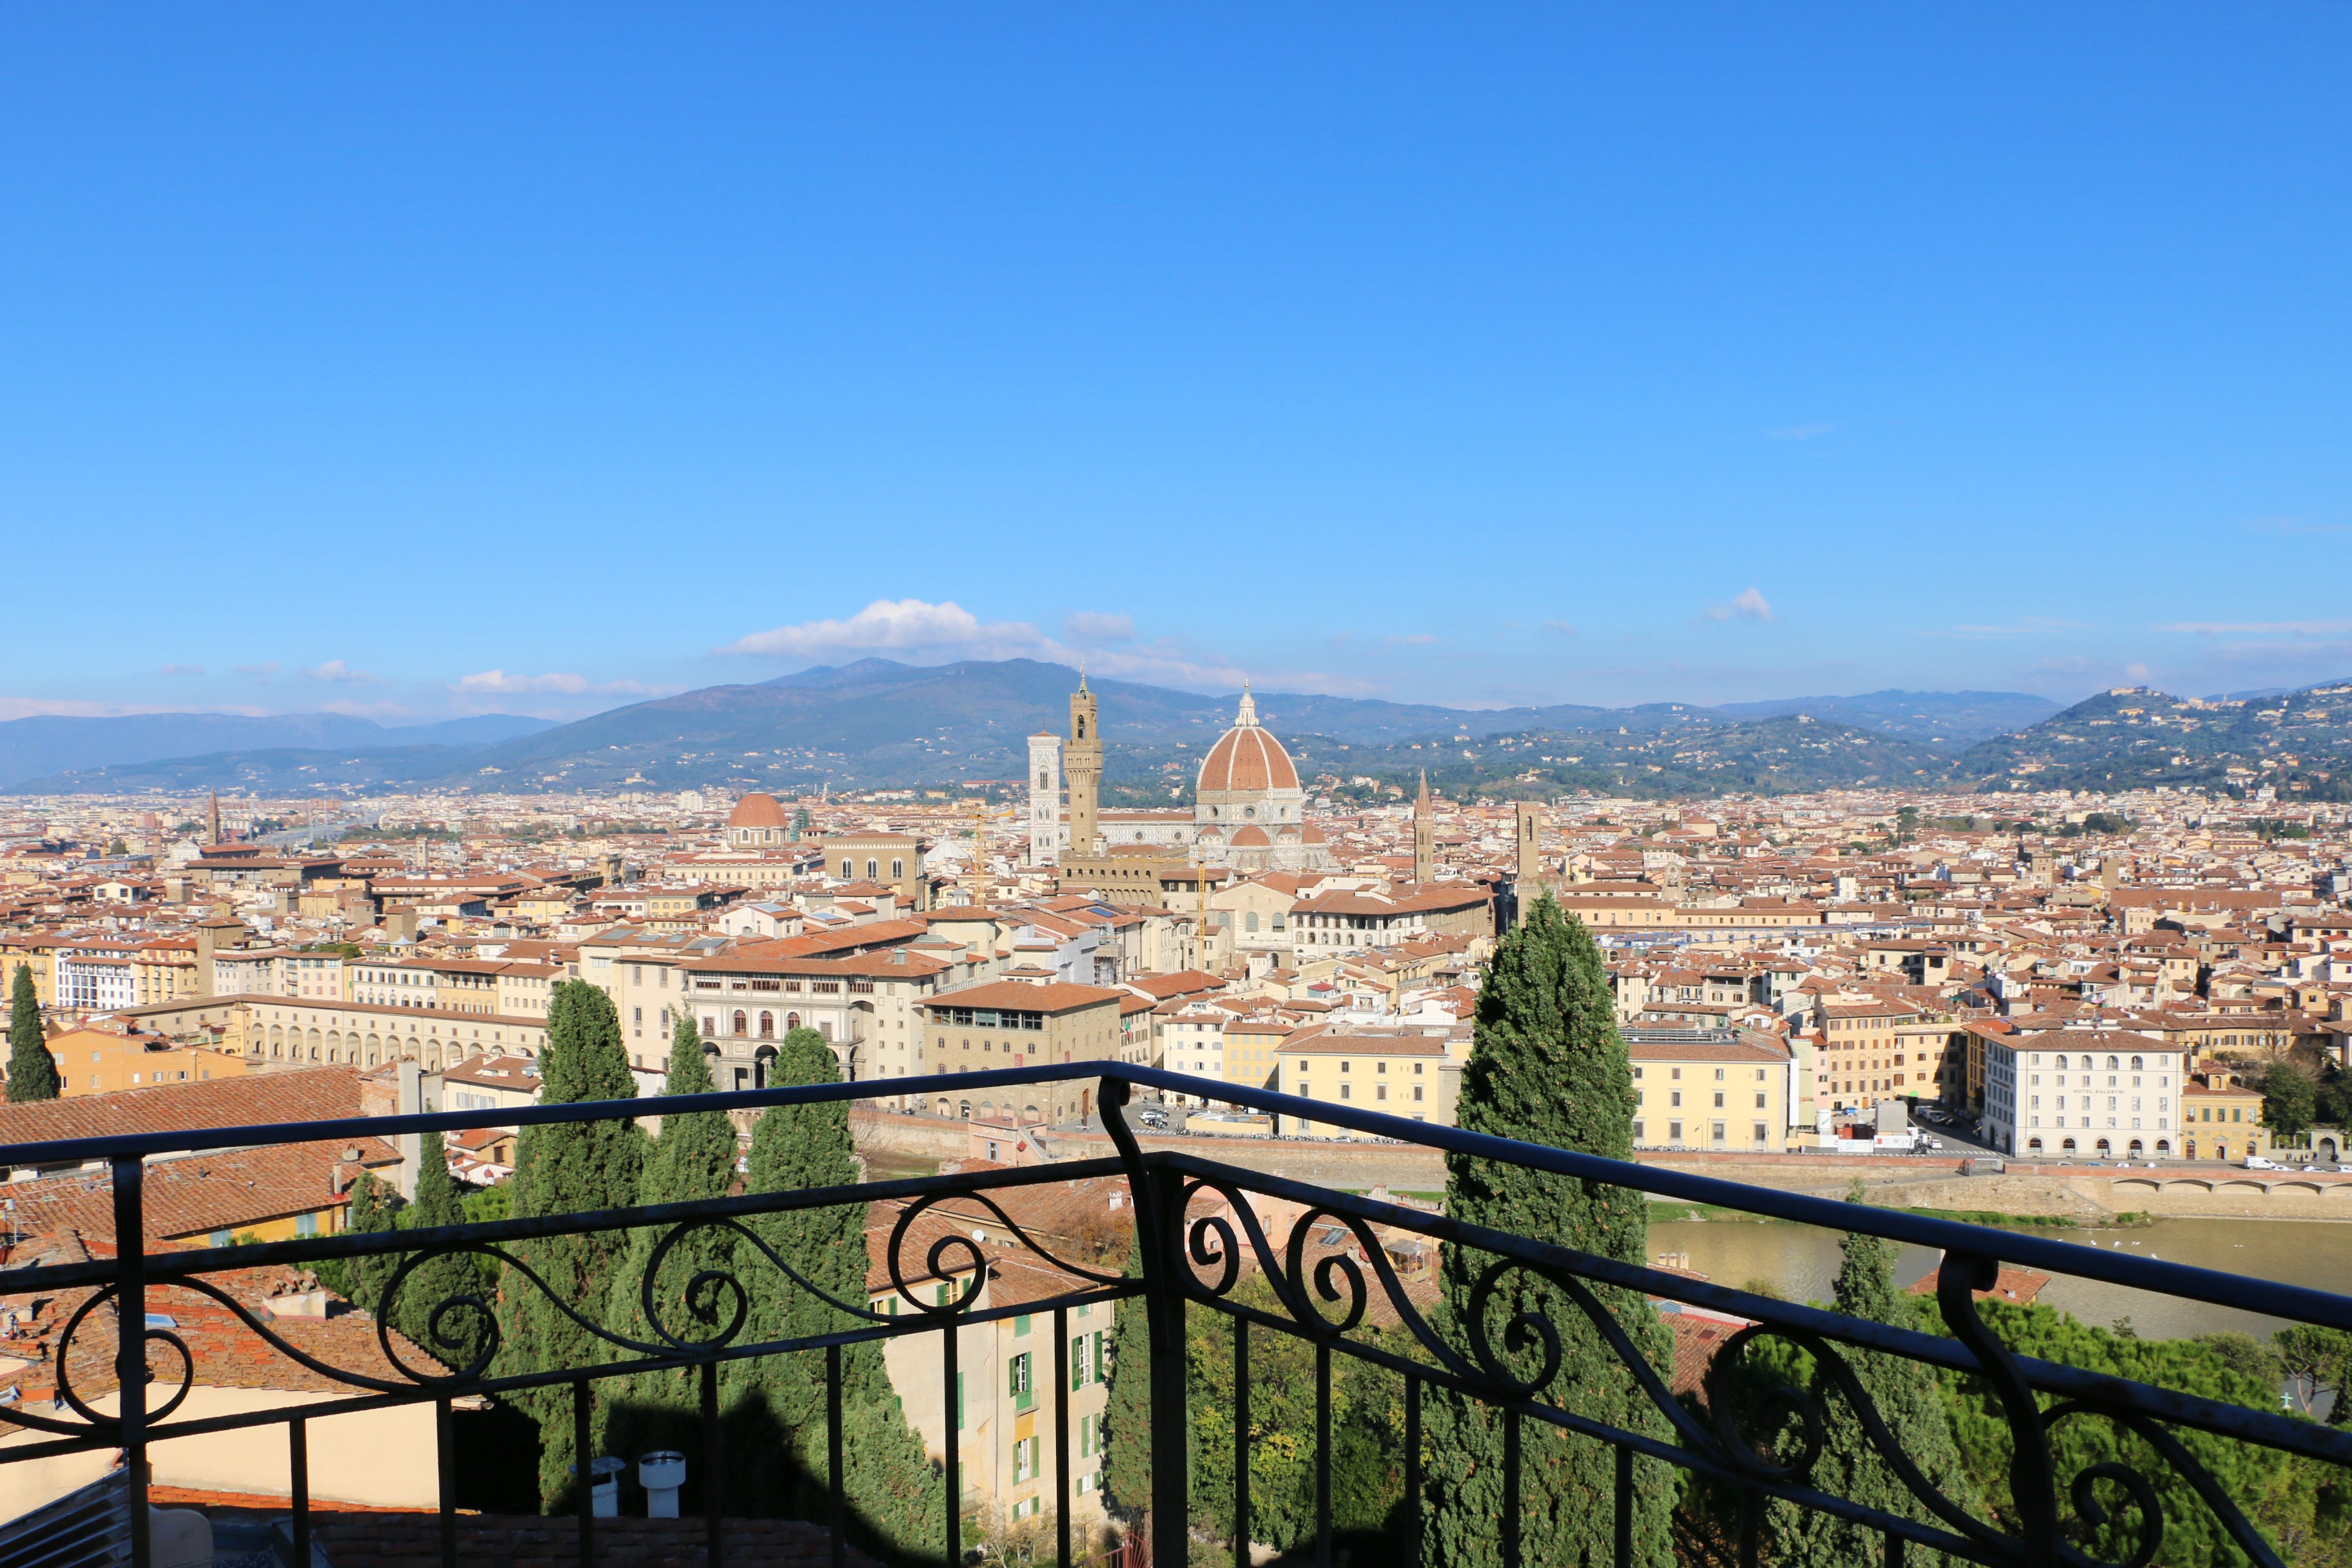 Visit the Bardini Gardens in Florence for its Flowers & Views